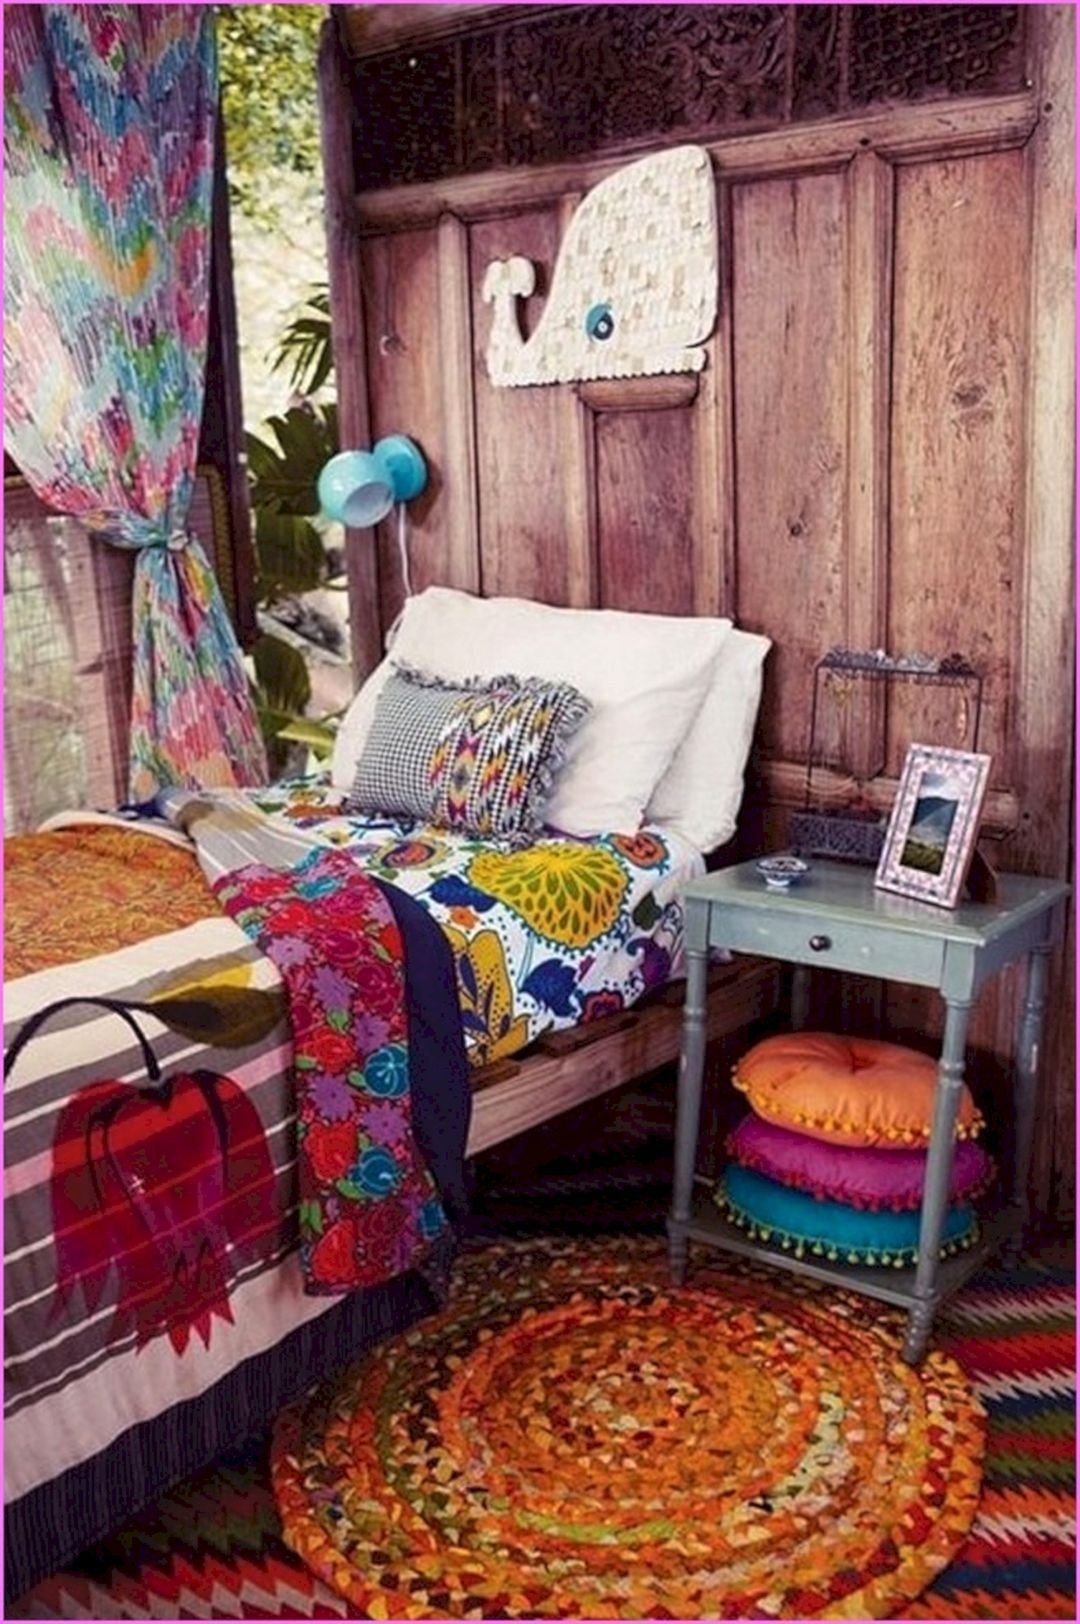 Bohemian Decor On A Budget Lovely Diy Bohemian Room Decor Ideas Diy Bohemian Room Decor Ideas Design Ideas and Photos